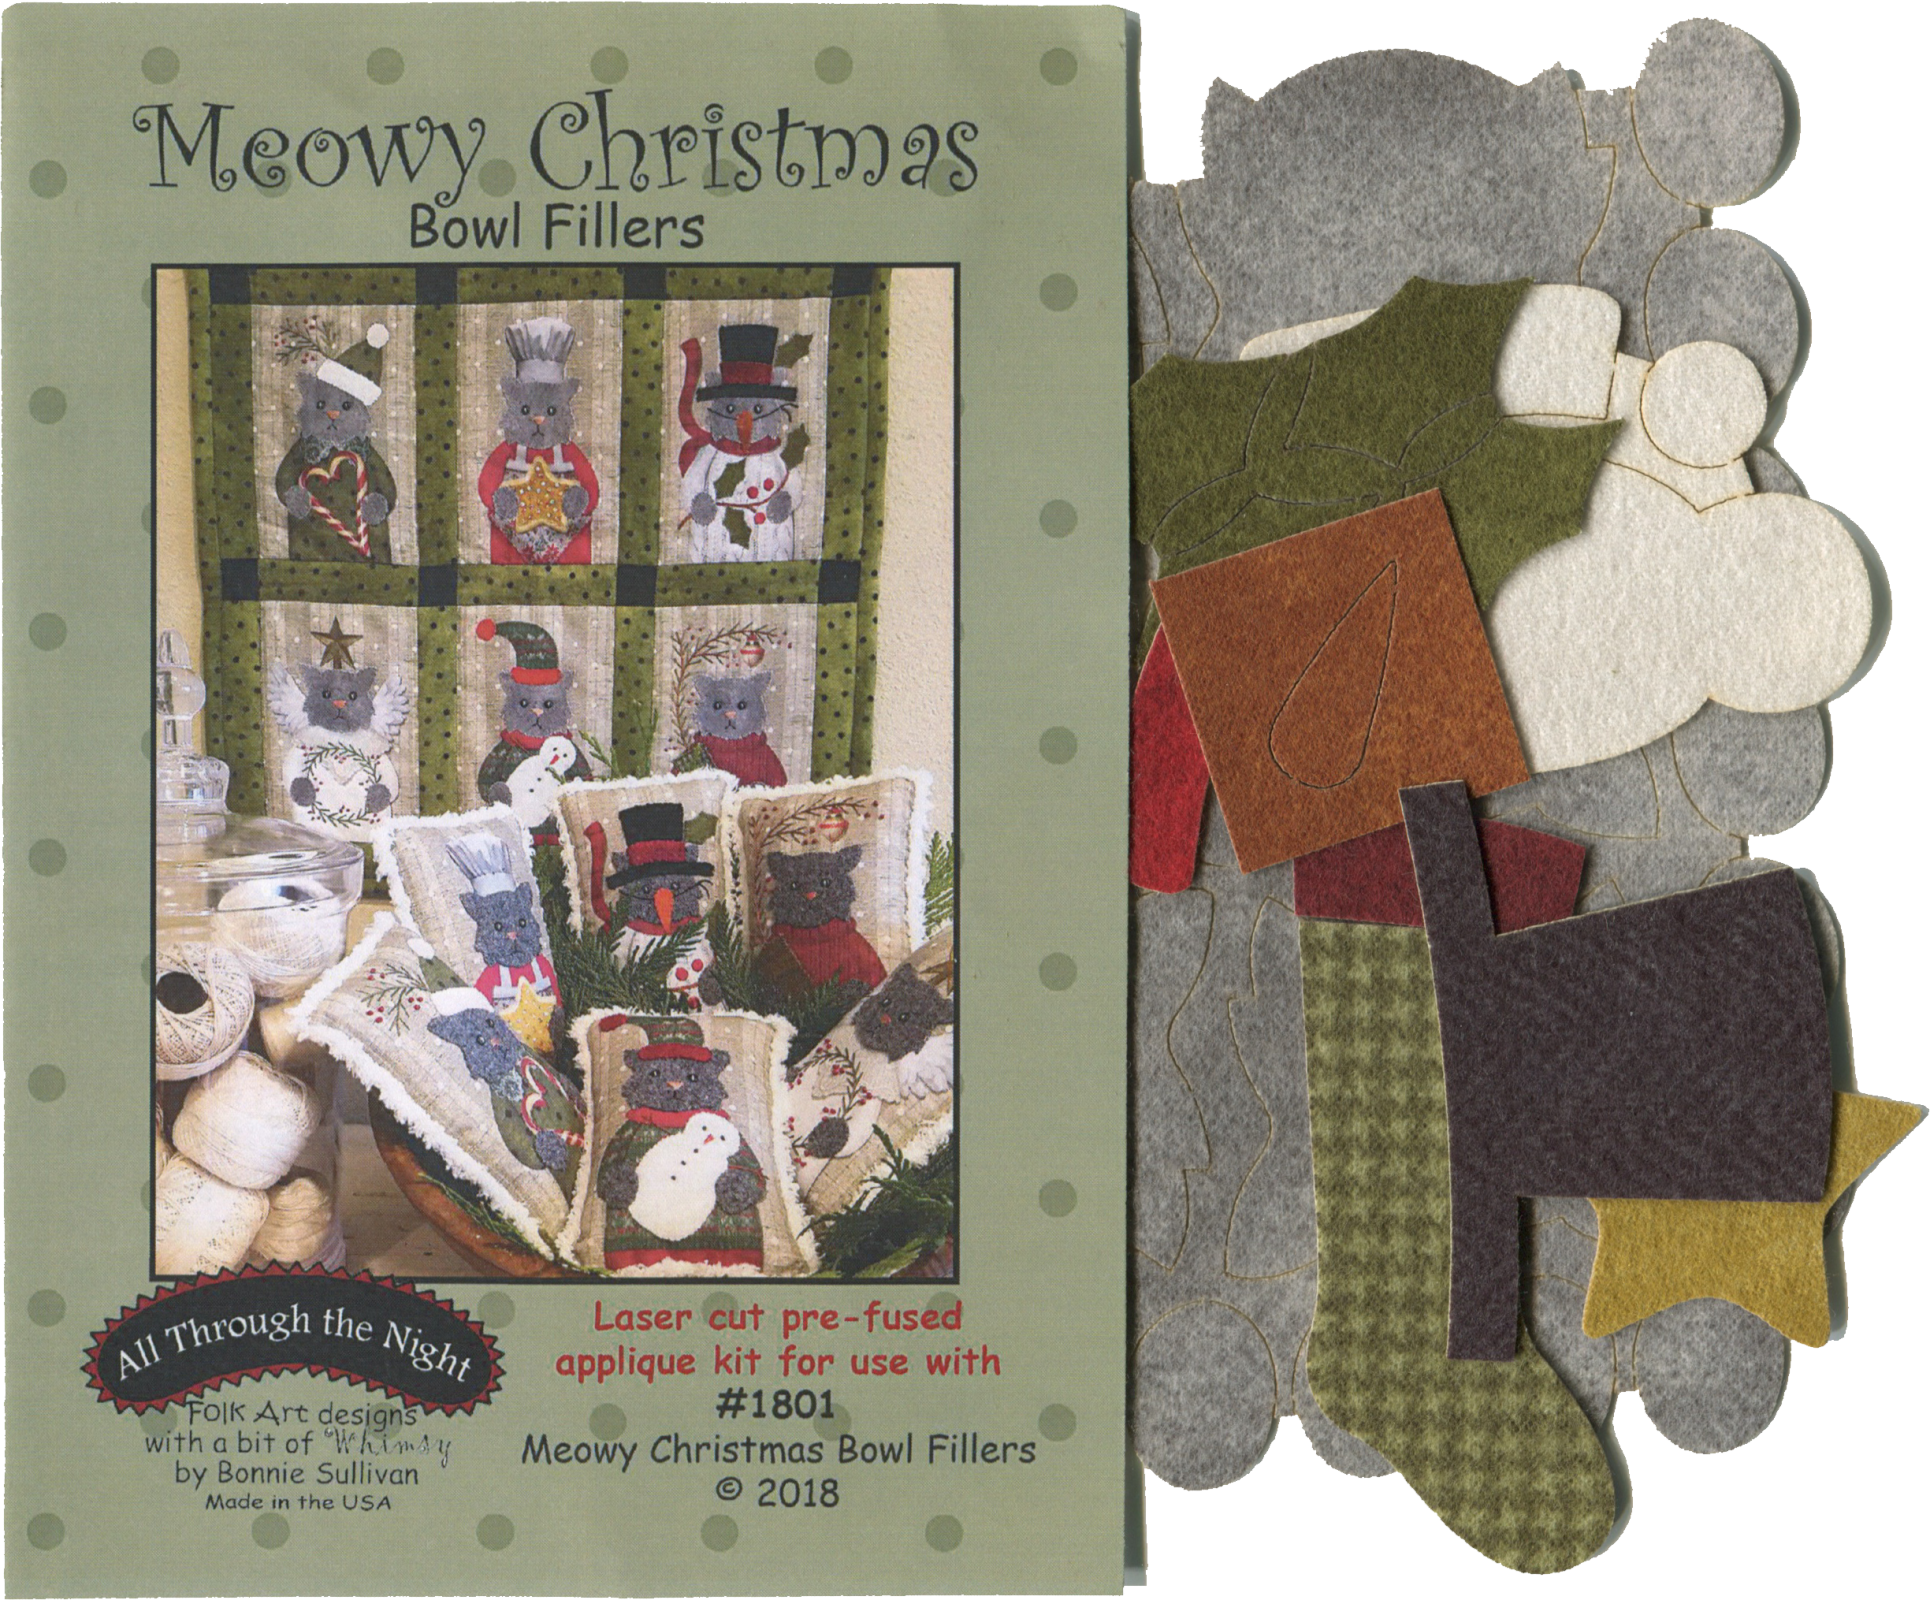 K1801 Meowy Christmas Applique Kit